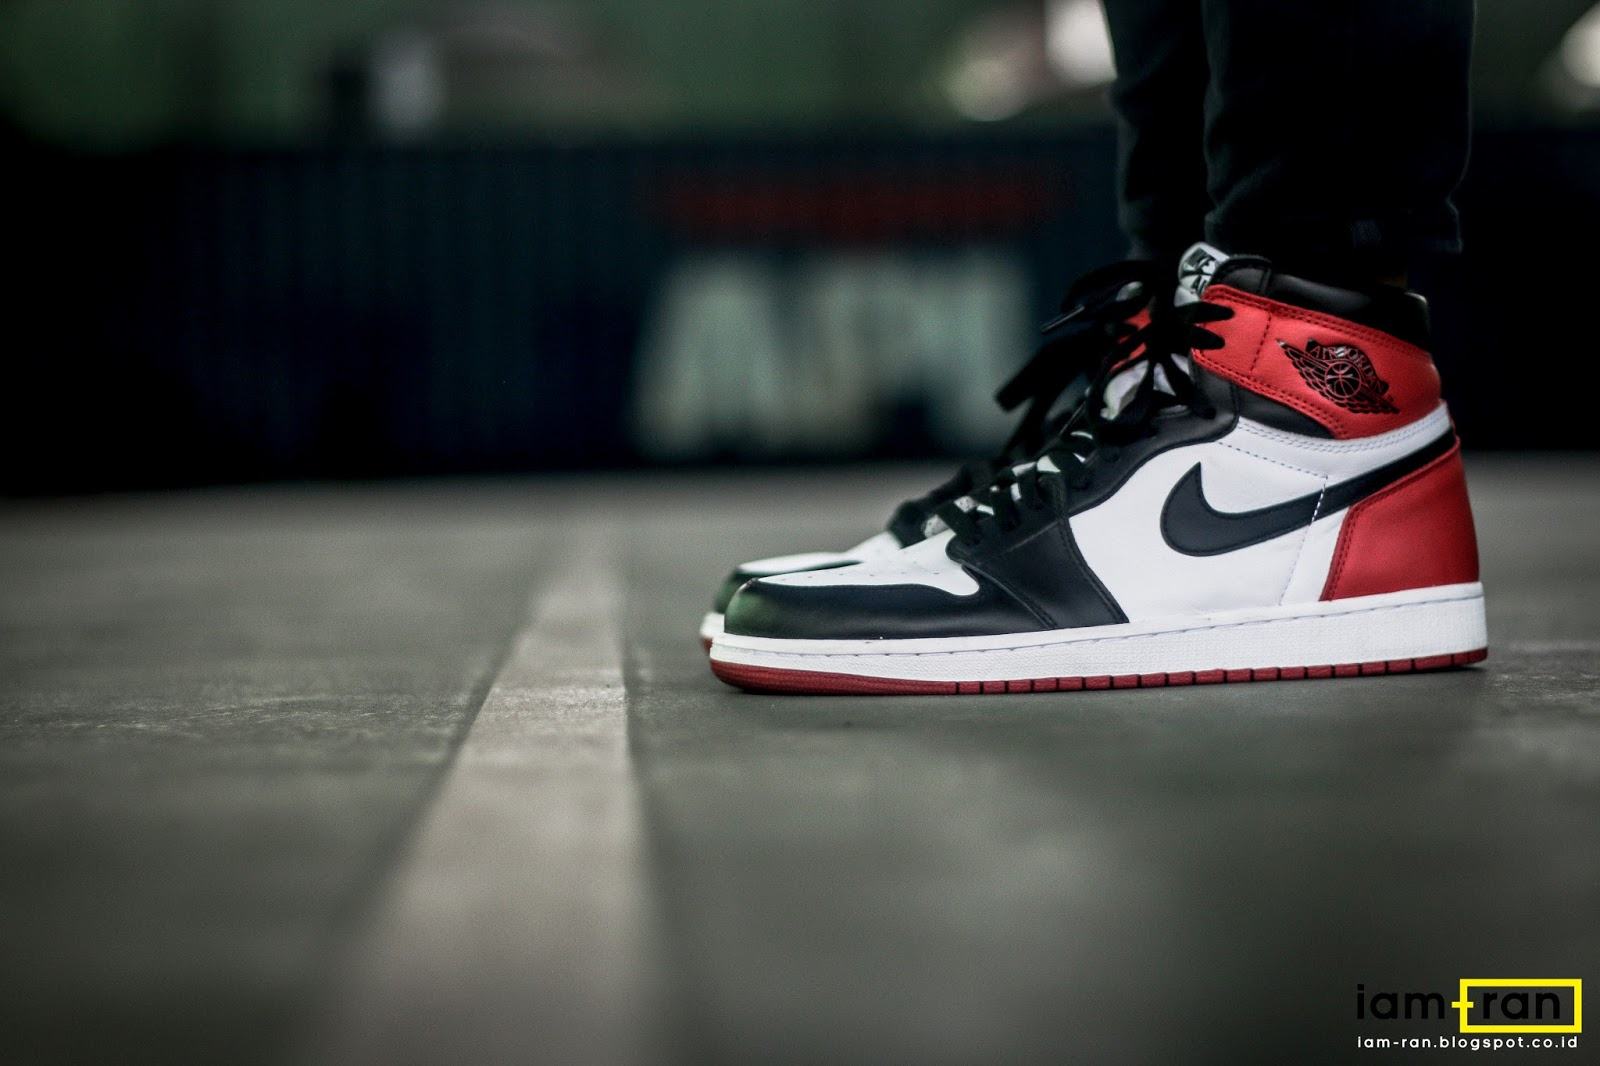 IAM-RAN  ON FEET   Derry - Nike Air Jordan 1